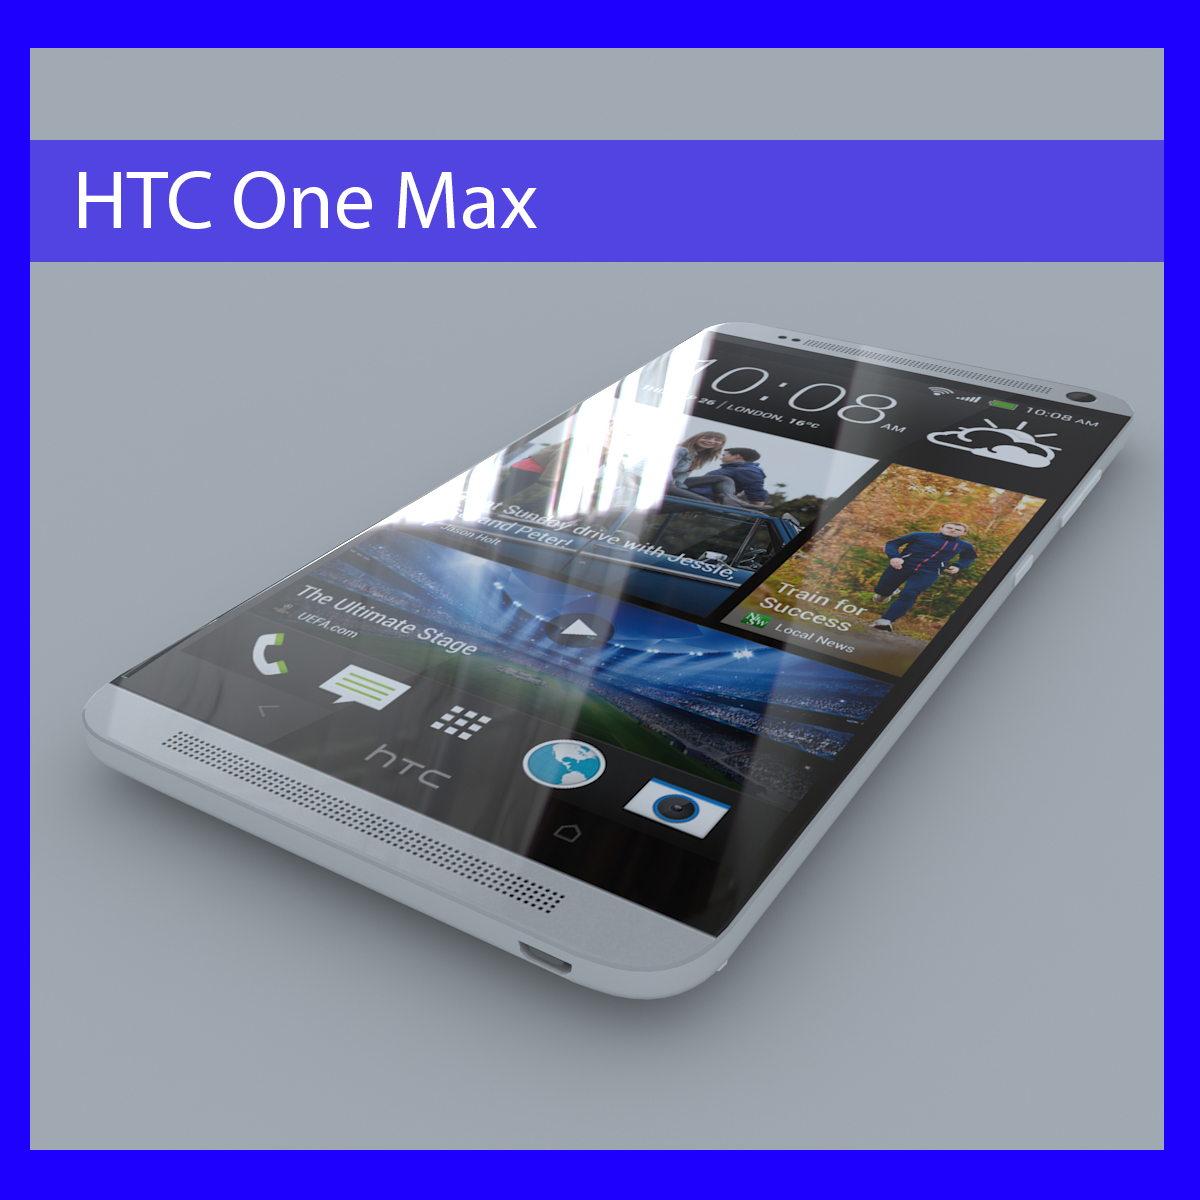 htc one max 3d model uchafswm c4d am y g j d j 158163